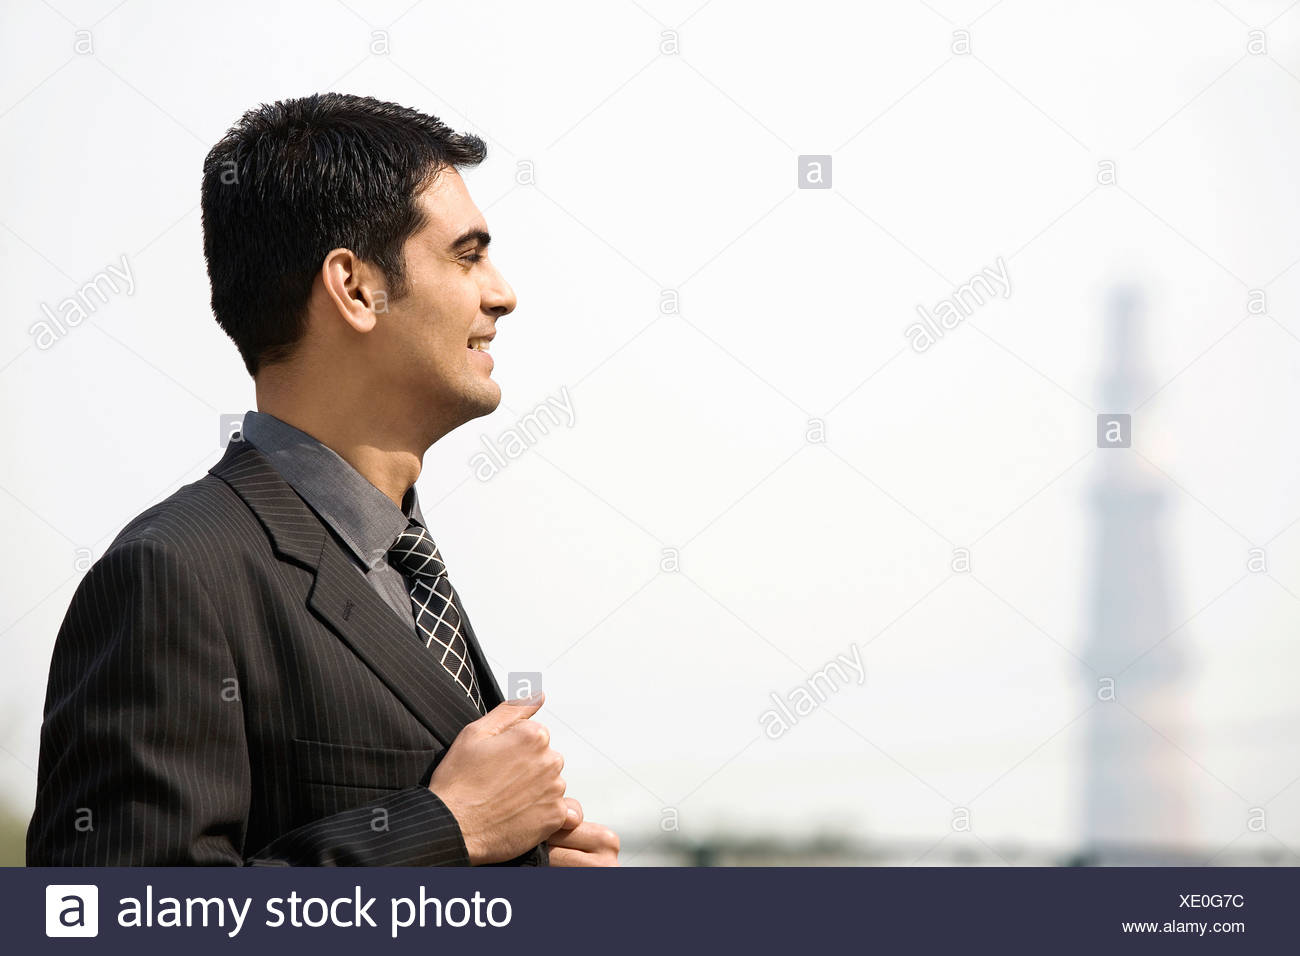 Businessman smiling - Stock Image